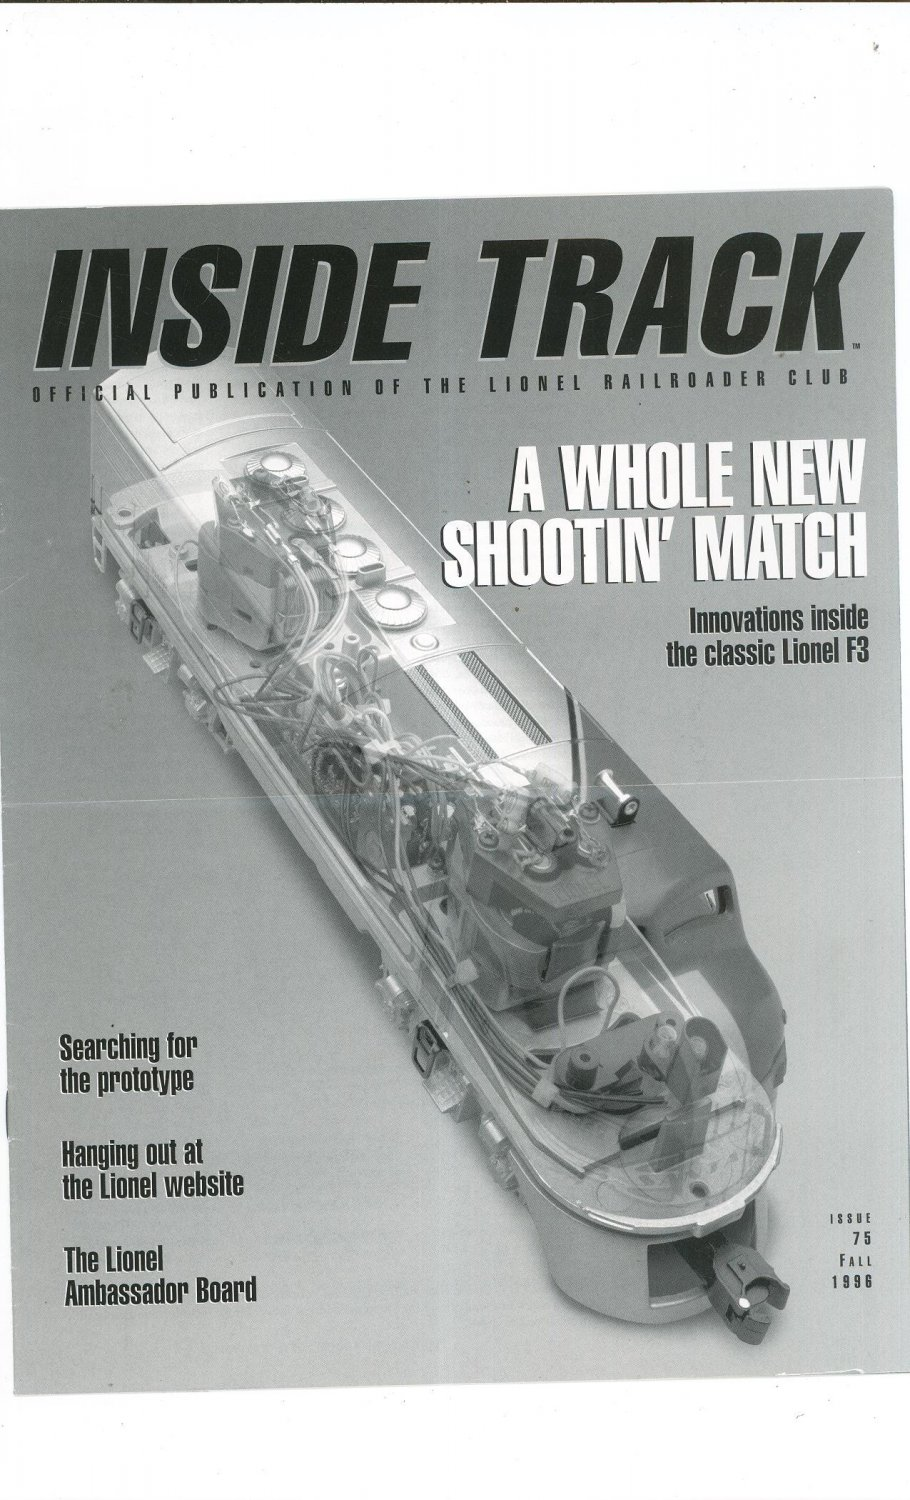 Lionel Railroader Club Inside Track Fall 1996 Issue 75 Not PDF Train Free Shipping Offer